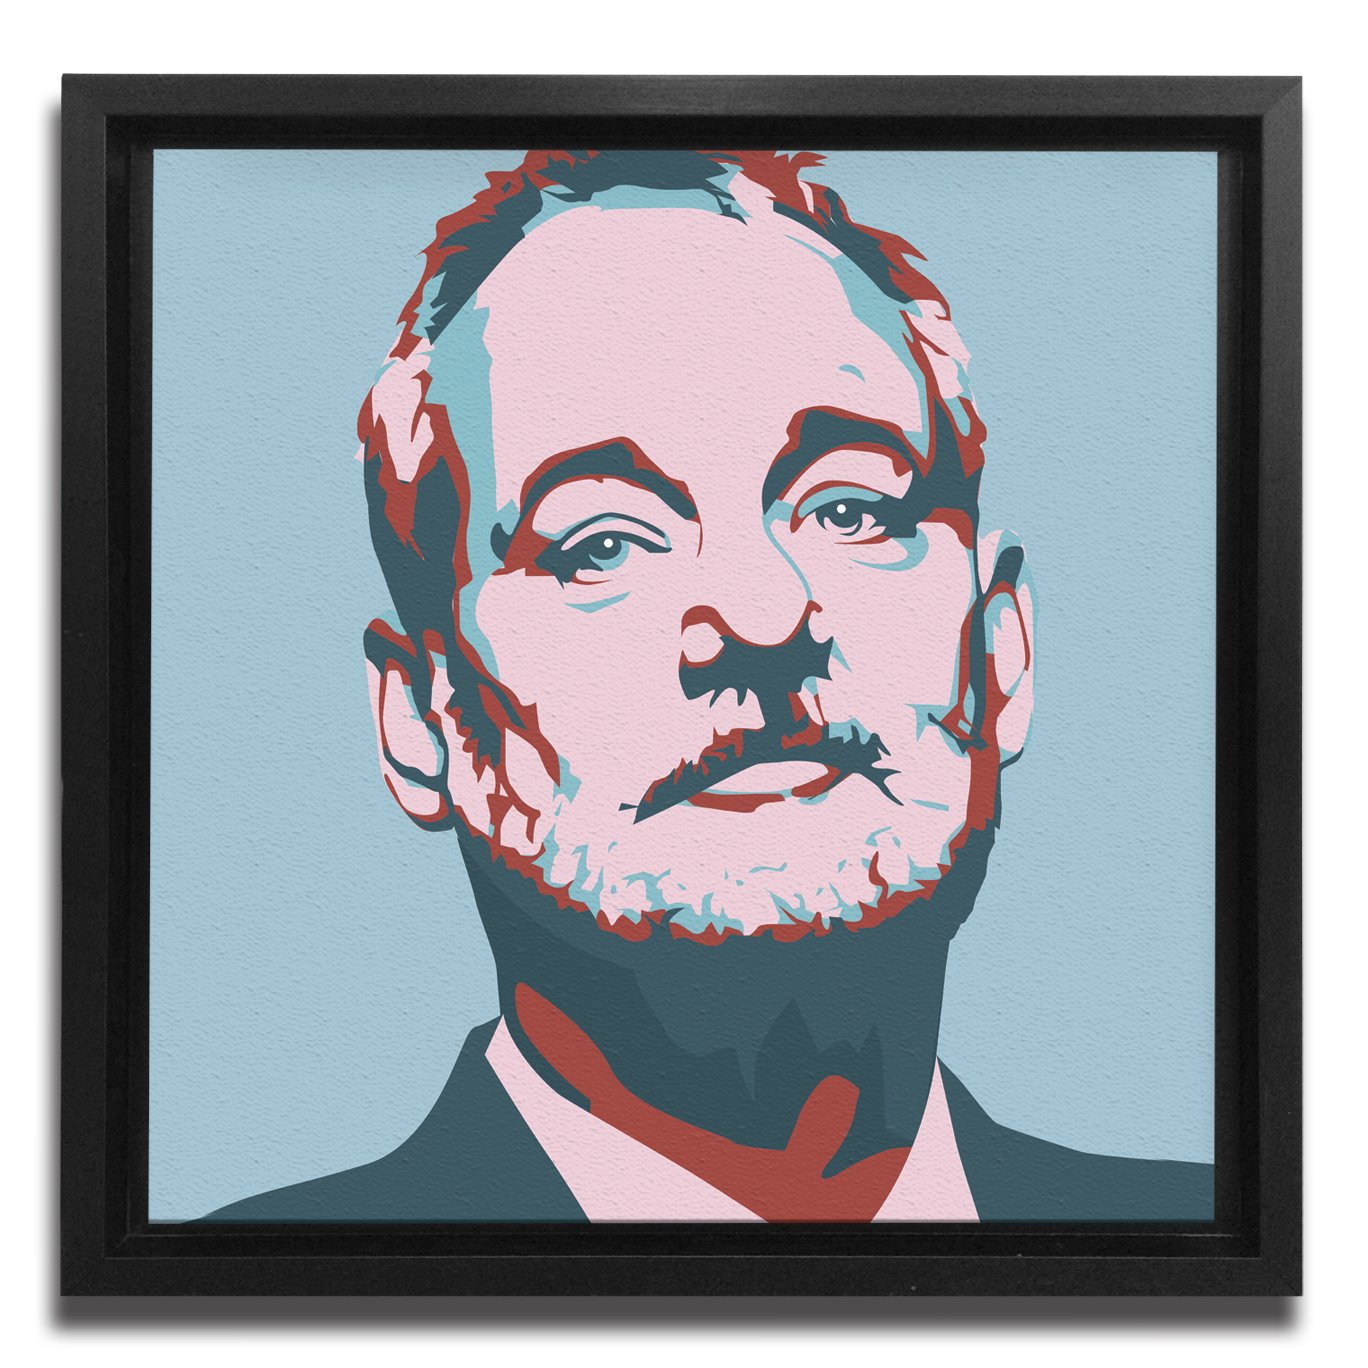 JP London Ready to Hang Made in North America Framed 1.5in Thick Gallery Wrap Canvas Wall Art Mural Bill Murray Two Warhol Baby Blue Chive 18in SQSFCNV2240